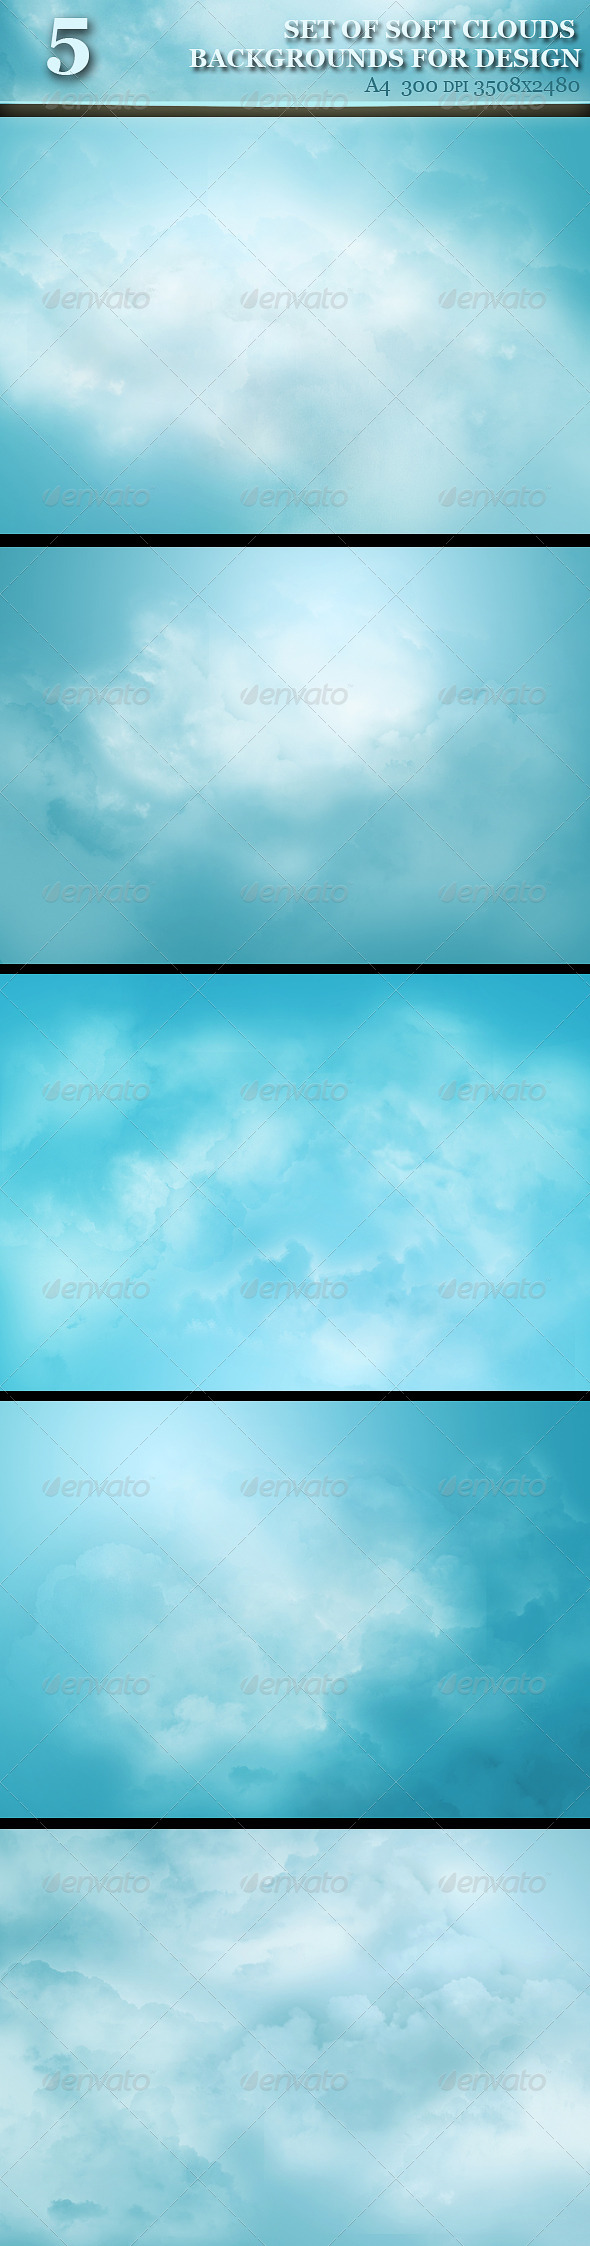 GraphicRiver Set of Soft Clouds Backgrounds for Design 5659895